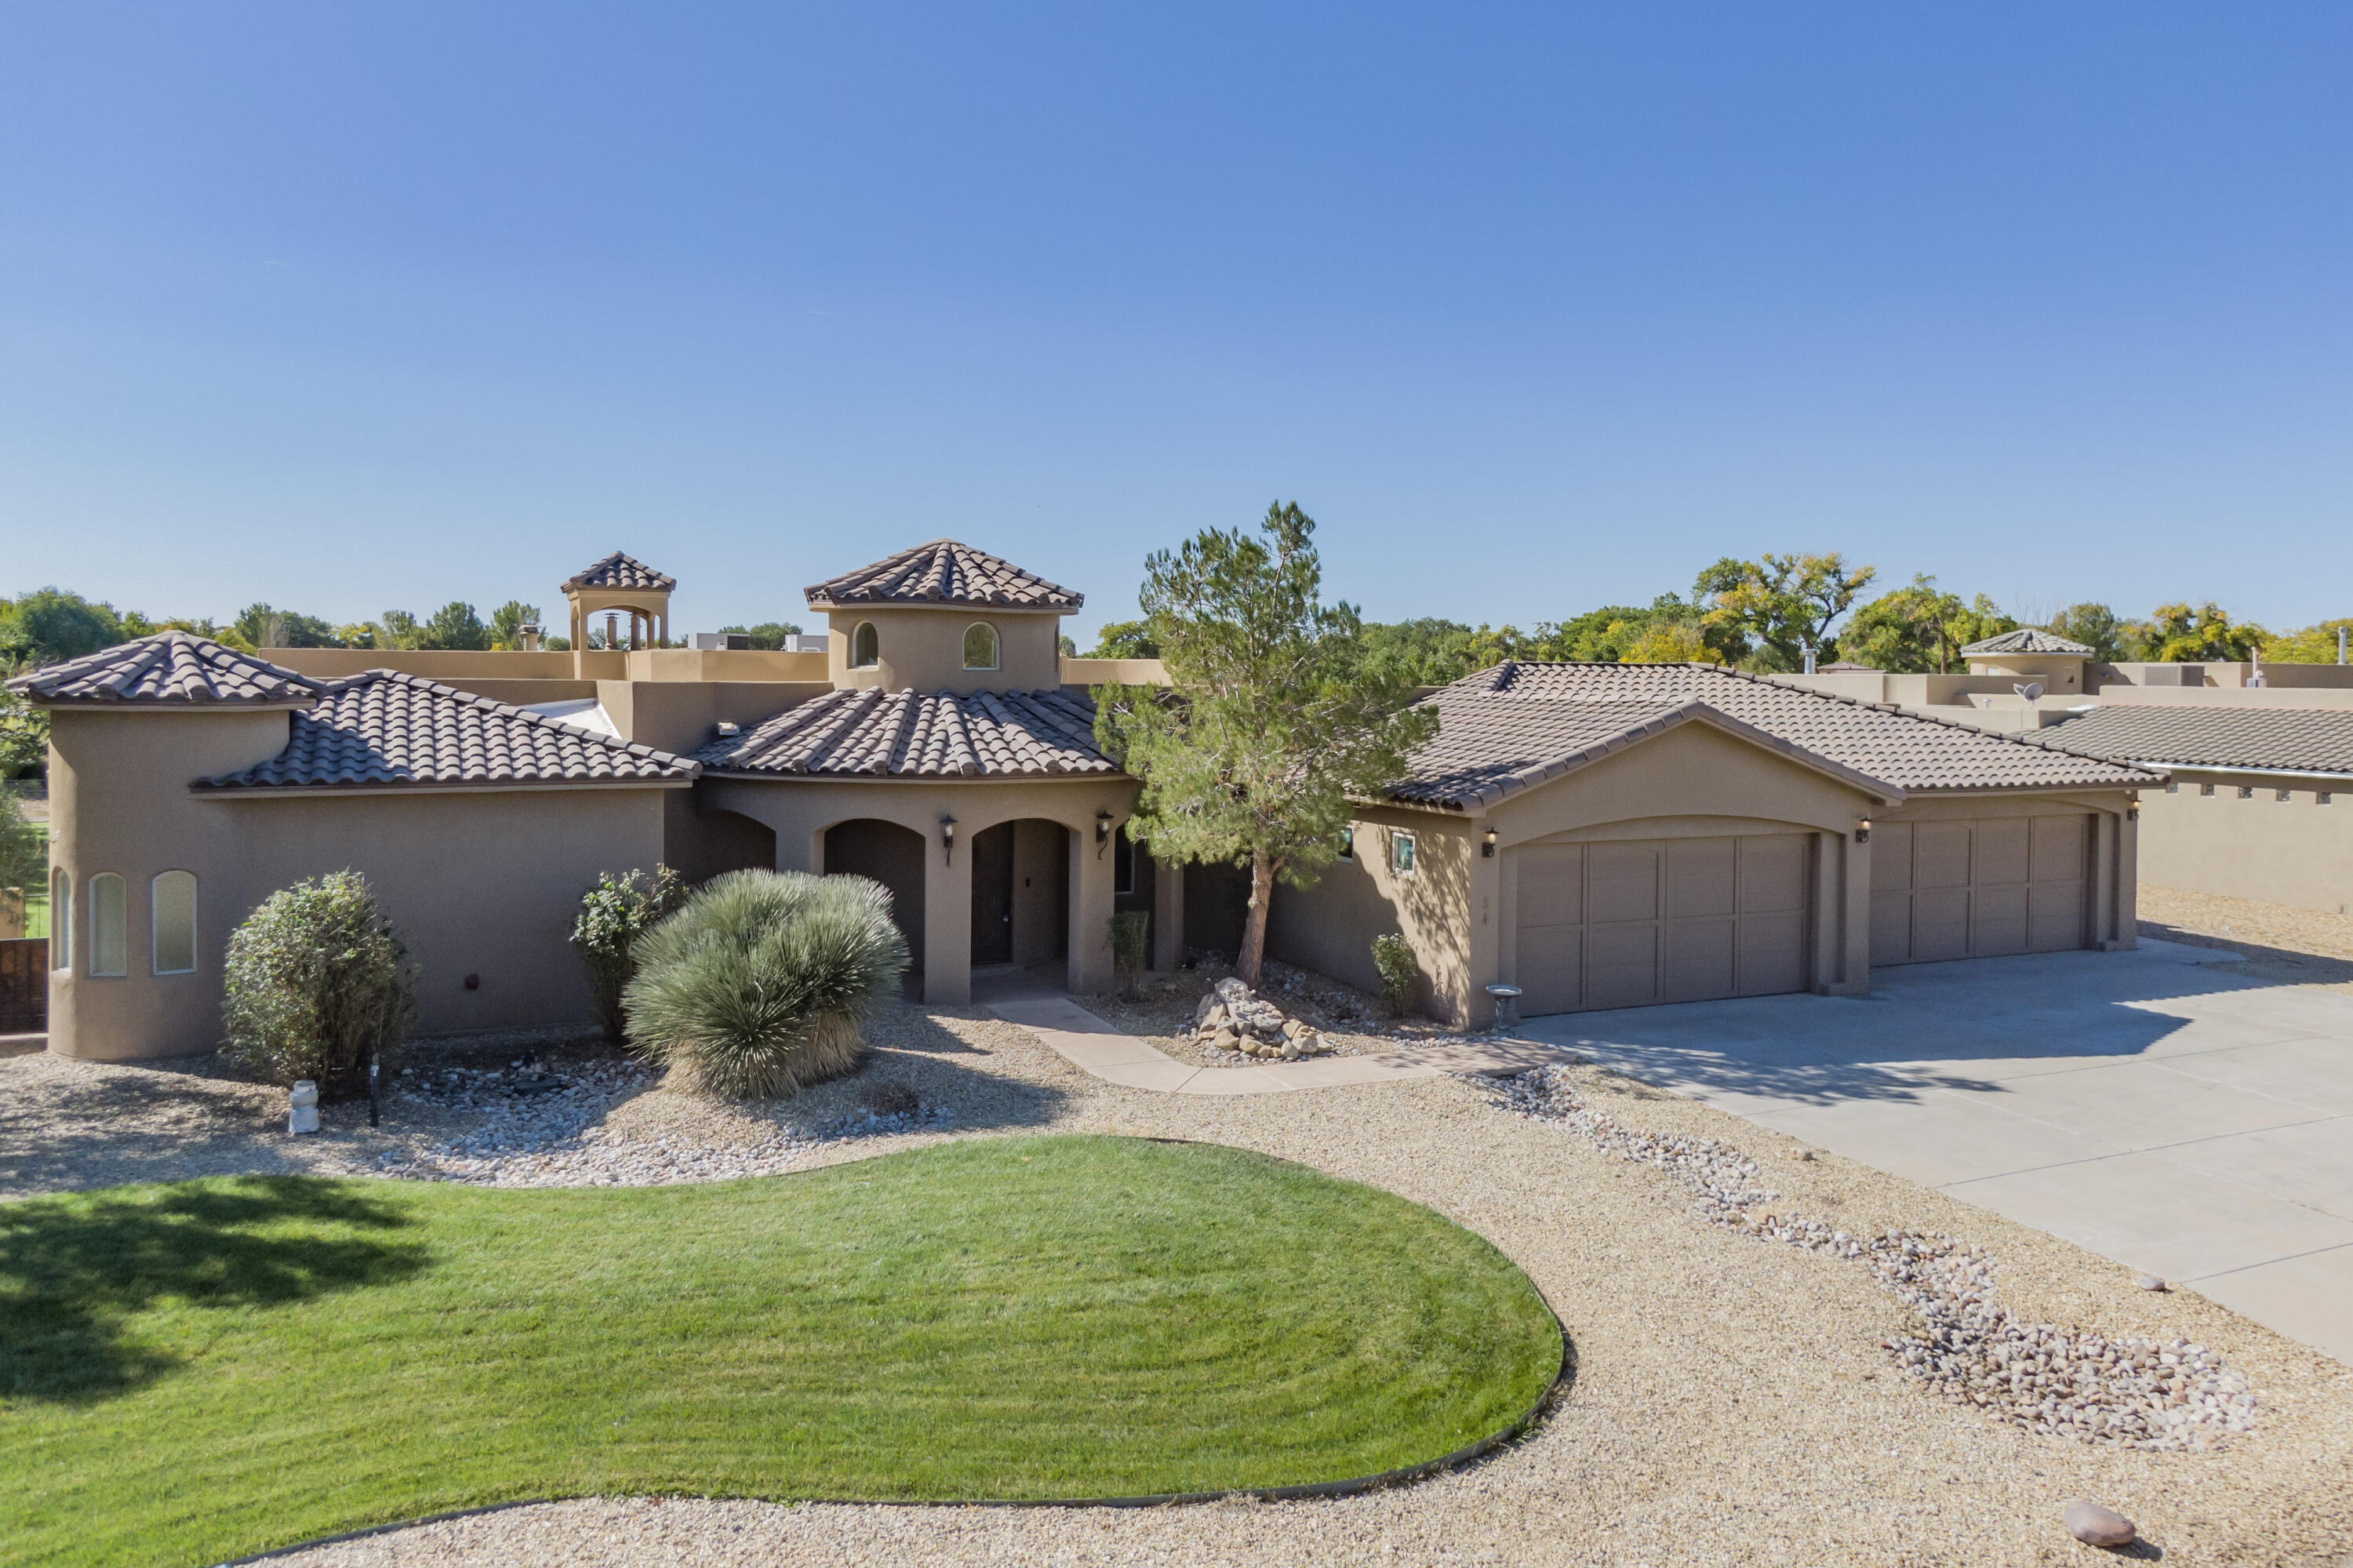 Come and take a look at this amazing custom-built home nestled in a wonderful, gated community in Peralta New Mexico. This gorgeous home features tons of amenities that will capture your interest, such as 2 irrigated acres with fruit trees, a very large covered patio area perfect for outdoor entertaining with a fantastic wood burning fireplace that would be sure to keep your guests warm during the colder months. Features also include granite countertops, a spacious pantry, 5 large bedrooms, 5 bathrooms, and a media room! This home literally has it all, including an attached 4 car garage! You do not want to miss out on your opportunity to own this spectacular home! Make an appointment today!!